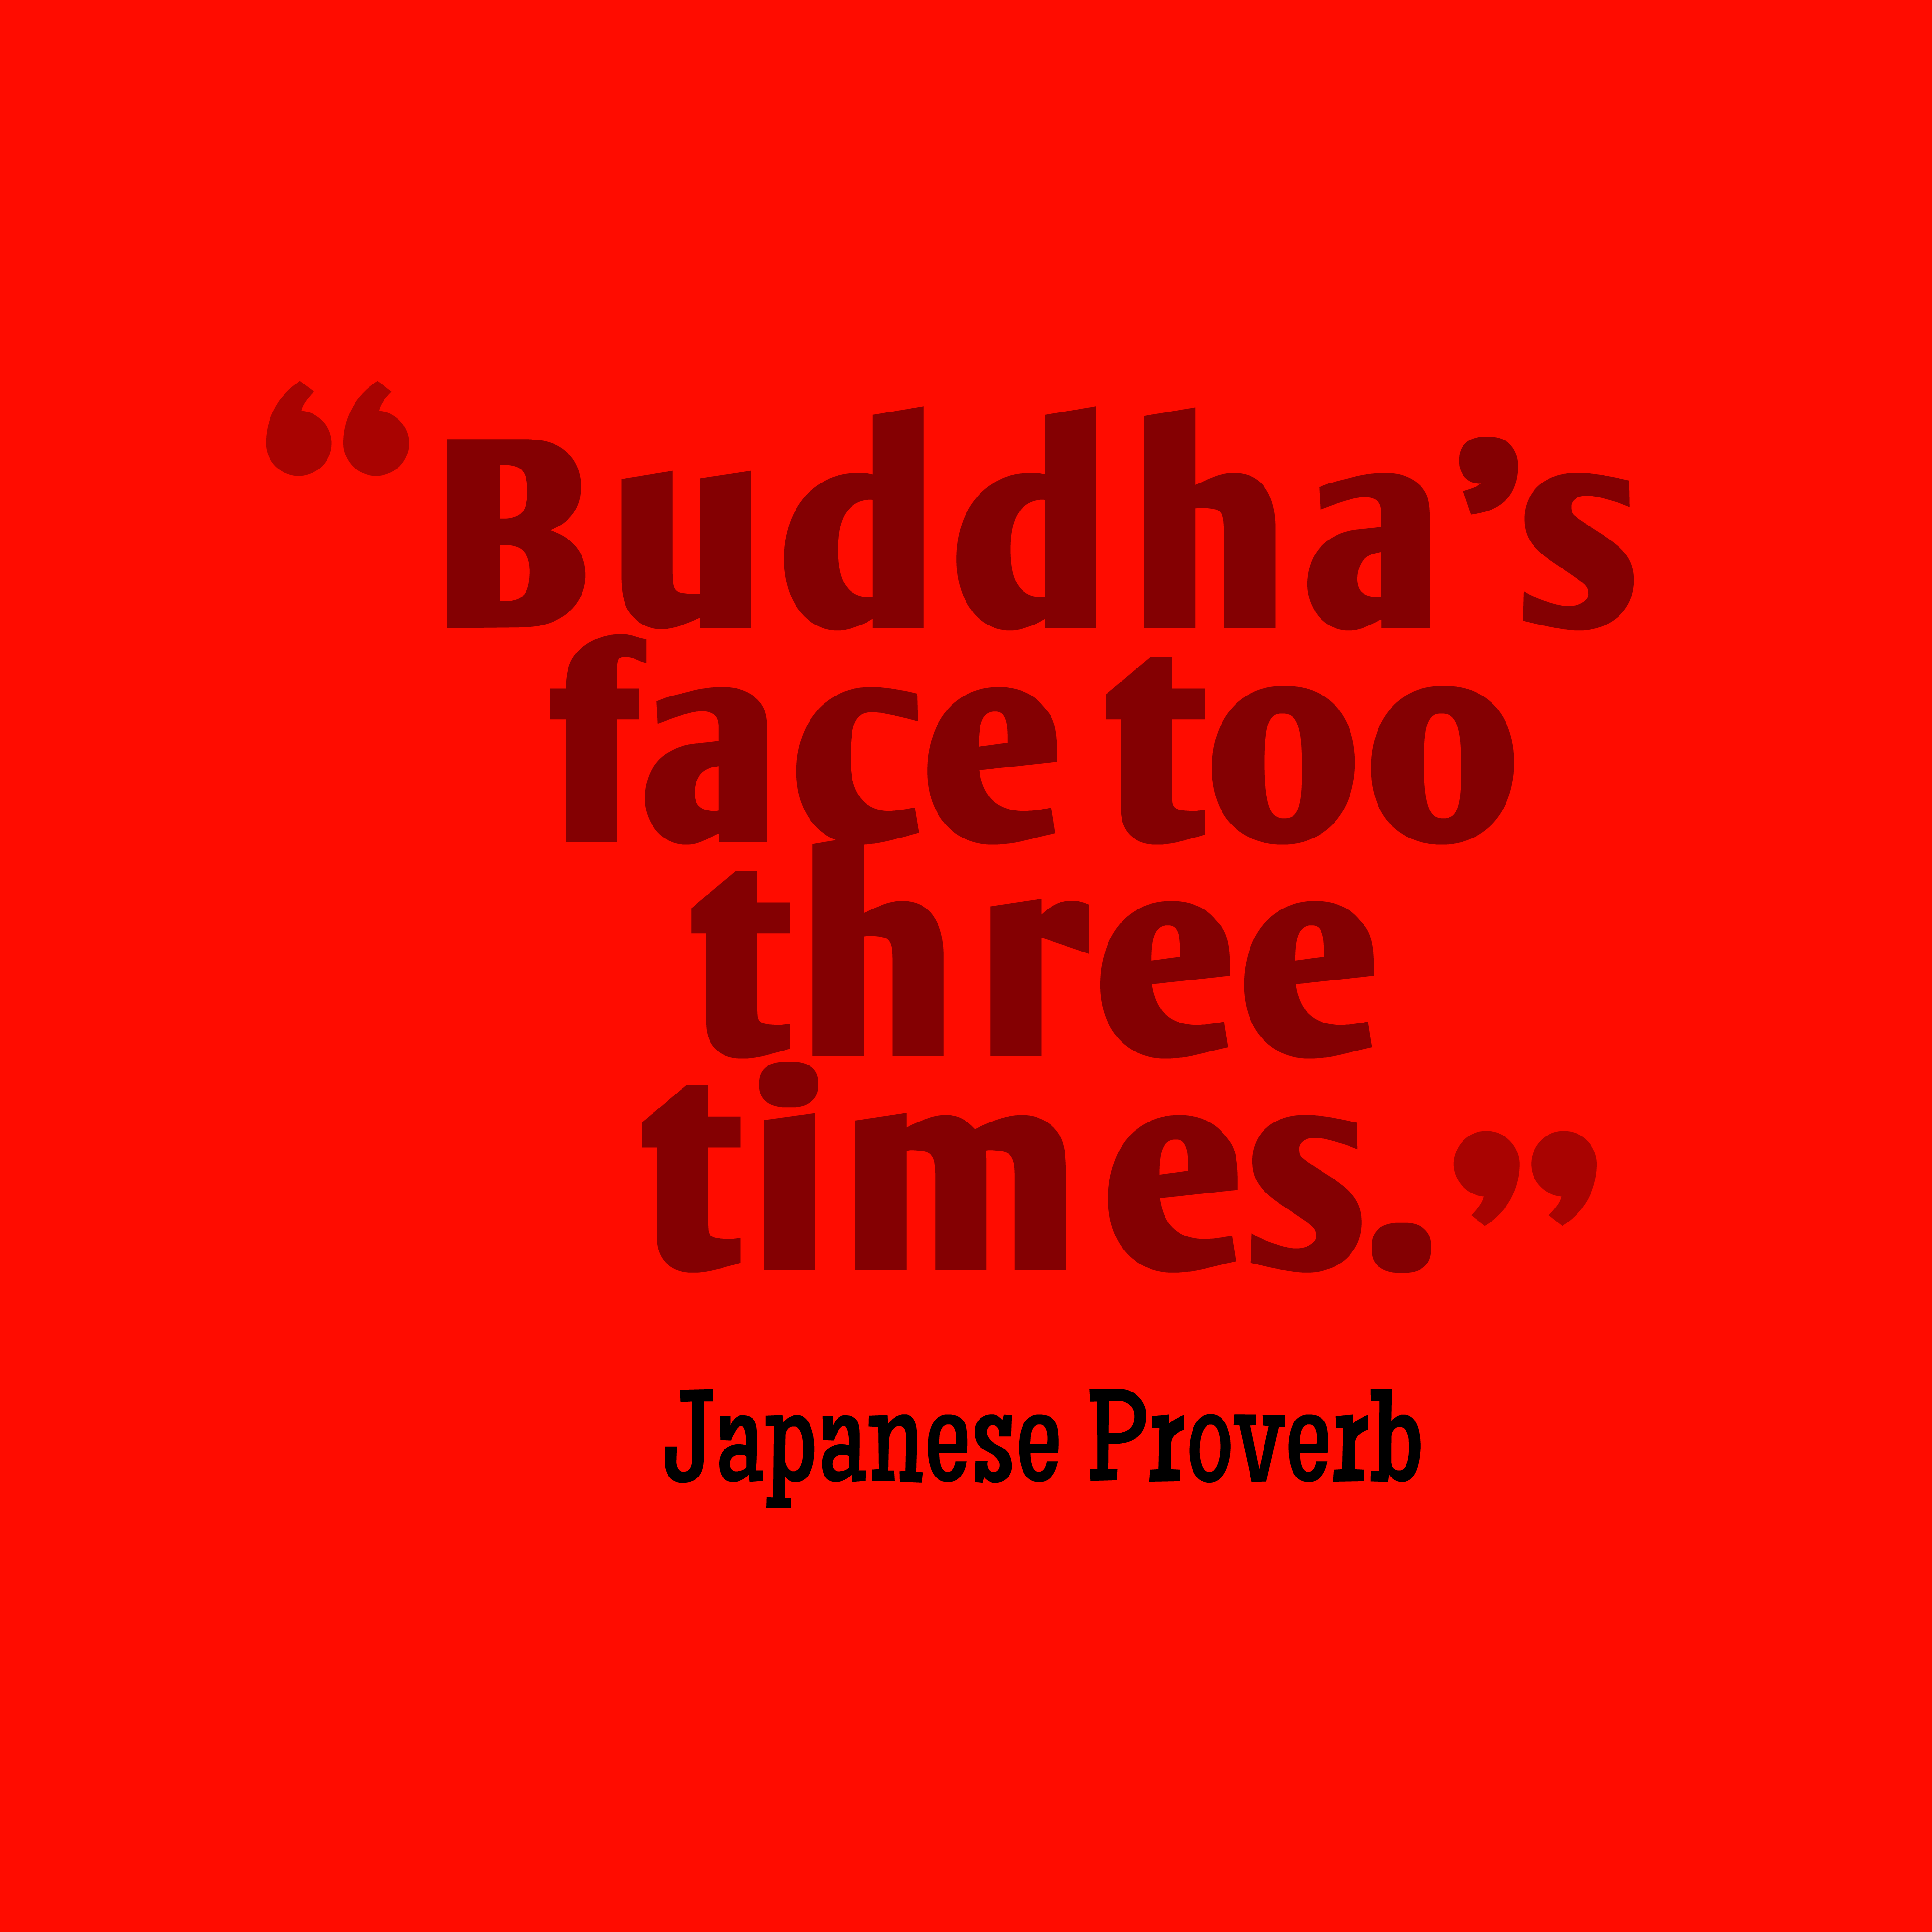 Quotes image of Buddha's face too three times.